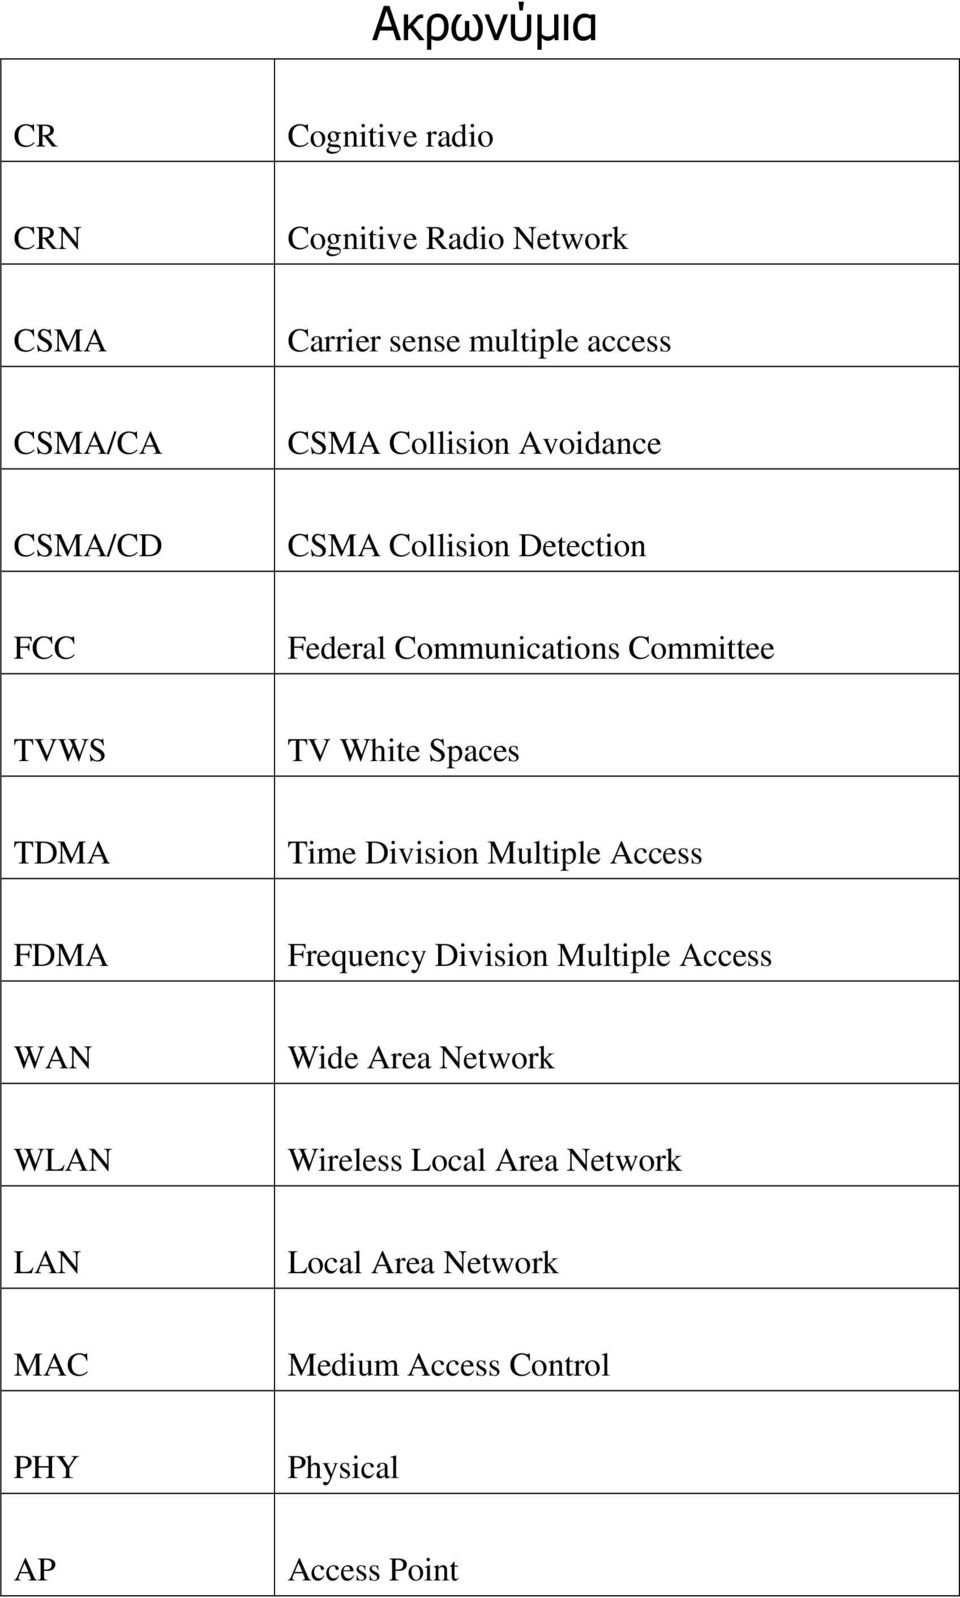 Spaces TDMA Time Division Multiple Access FDMA Frequency Division Multiple Access WAN Wide Area Network